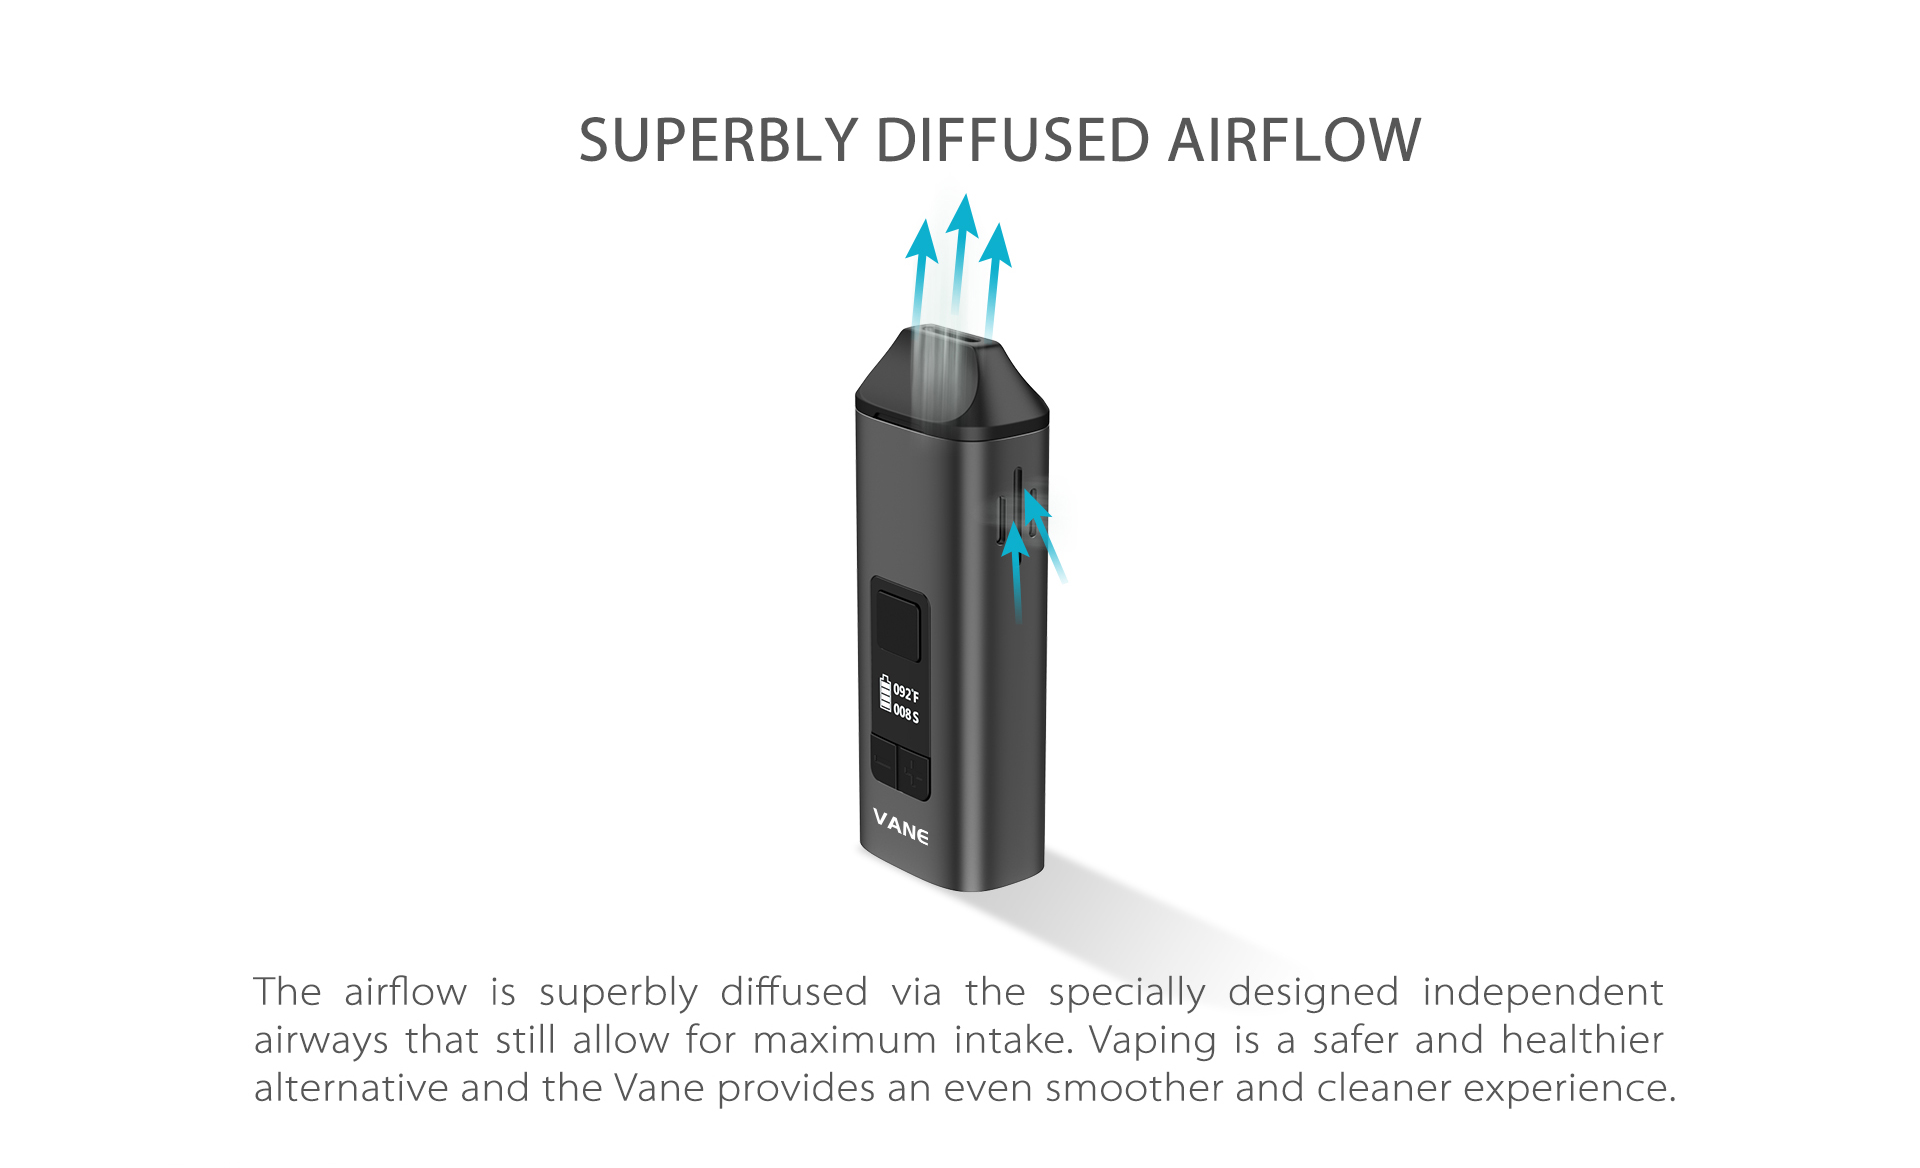 The Yocan Vane Dry Vaporizer airflow is superbly diffused